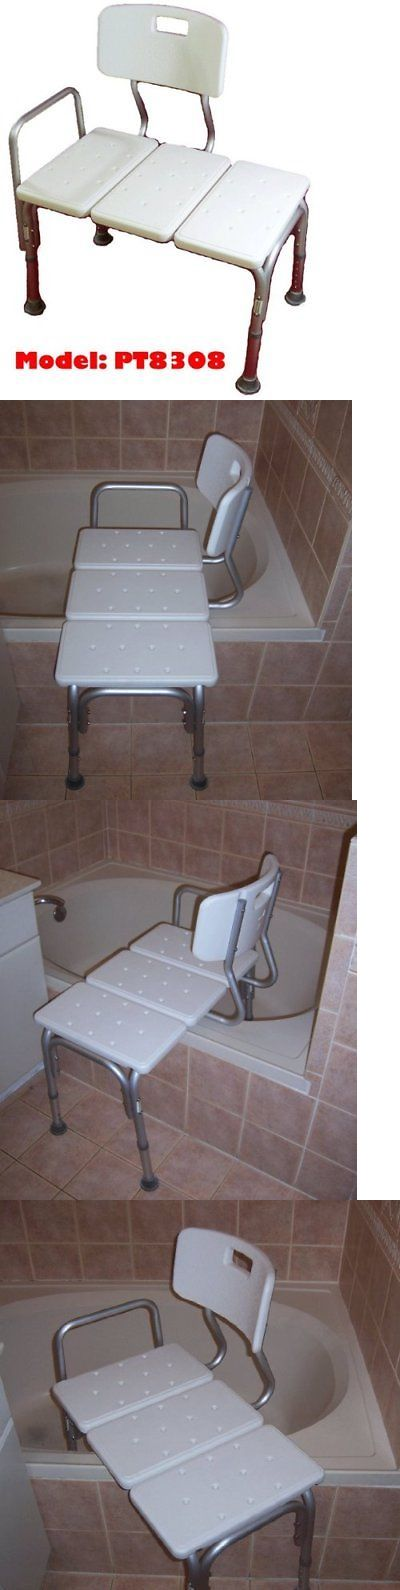 Transfer Boards and Benches: Shower Chairs For Elderly Medical Disabled Handicapped Bath Bathtub Seat Bench -> BUY IT NOW ONLY: $71.61 on eBay!